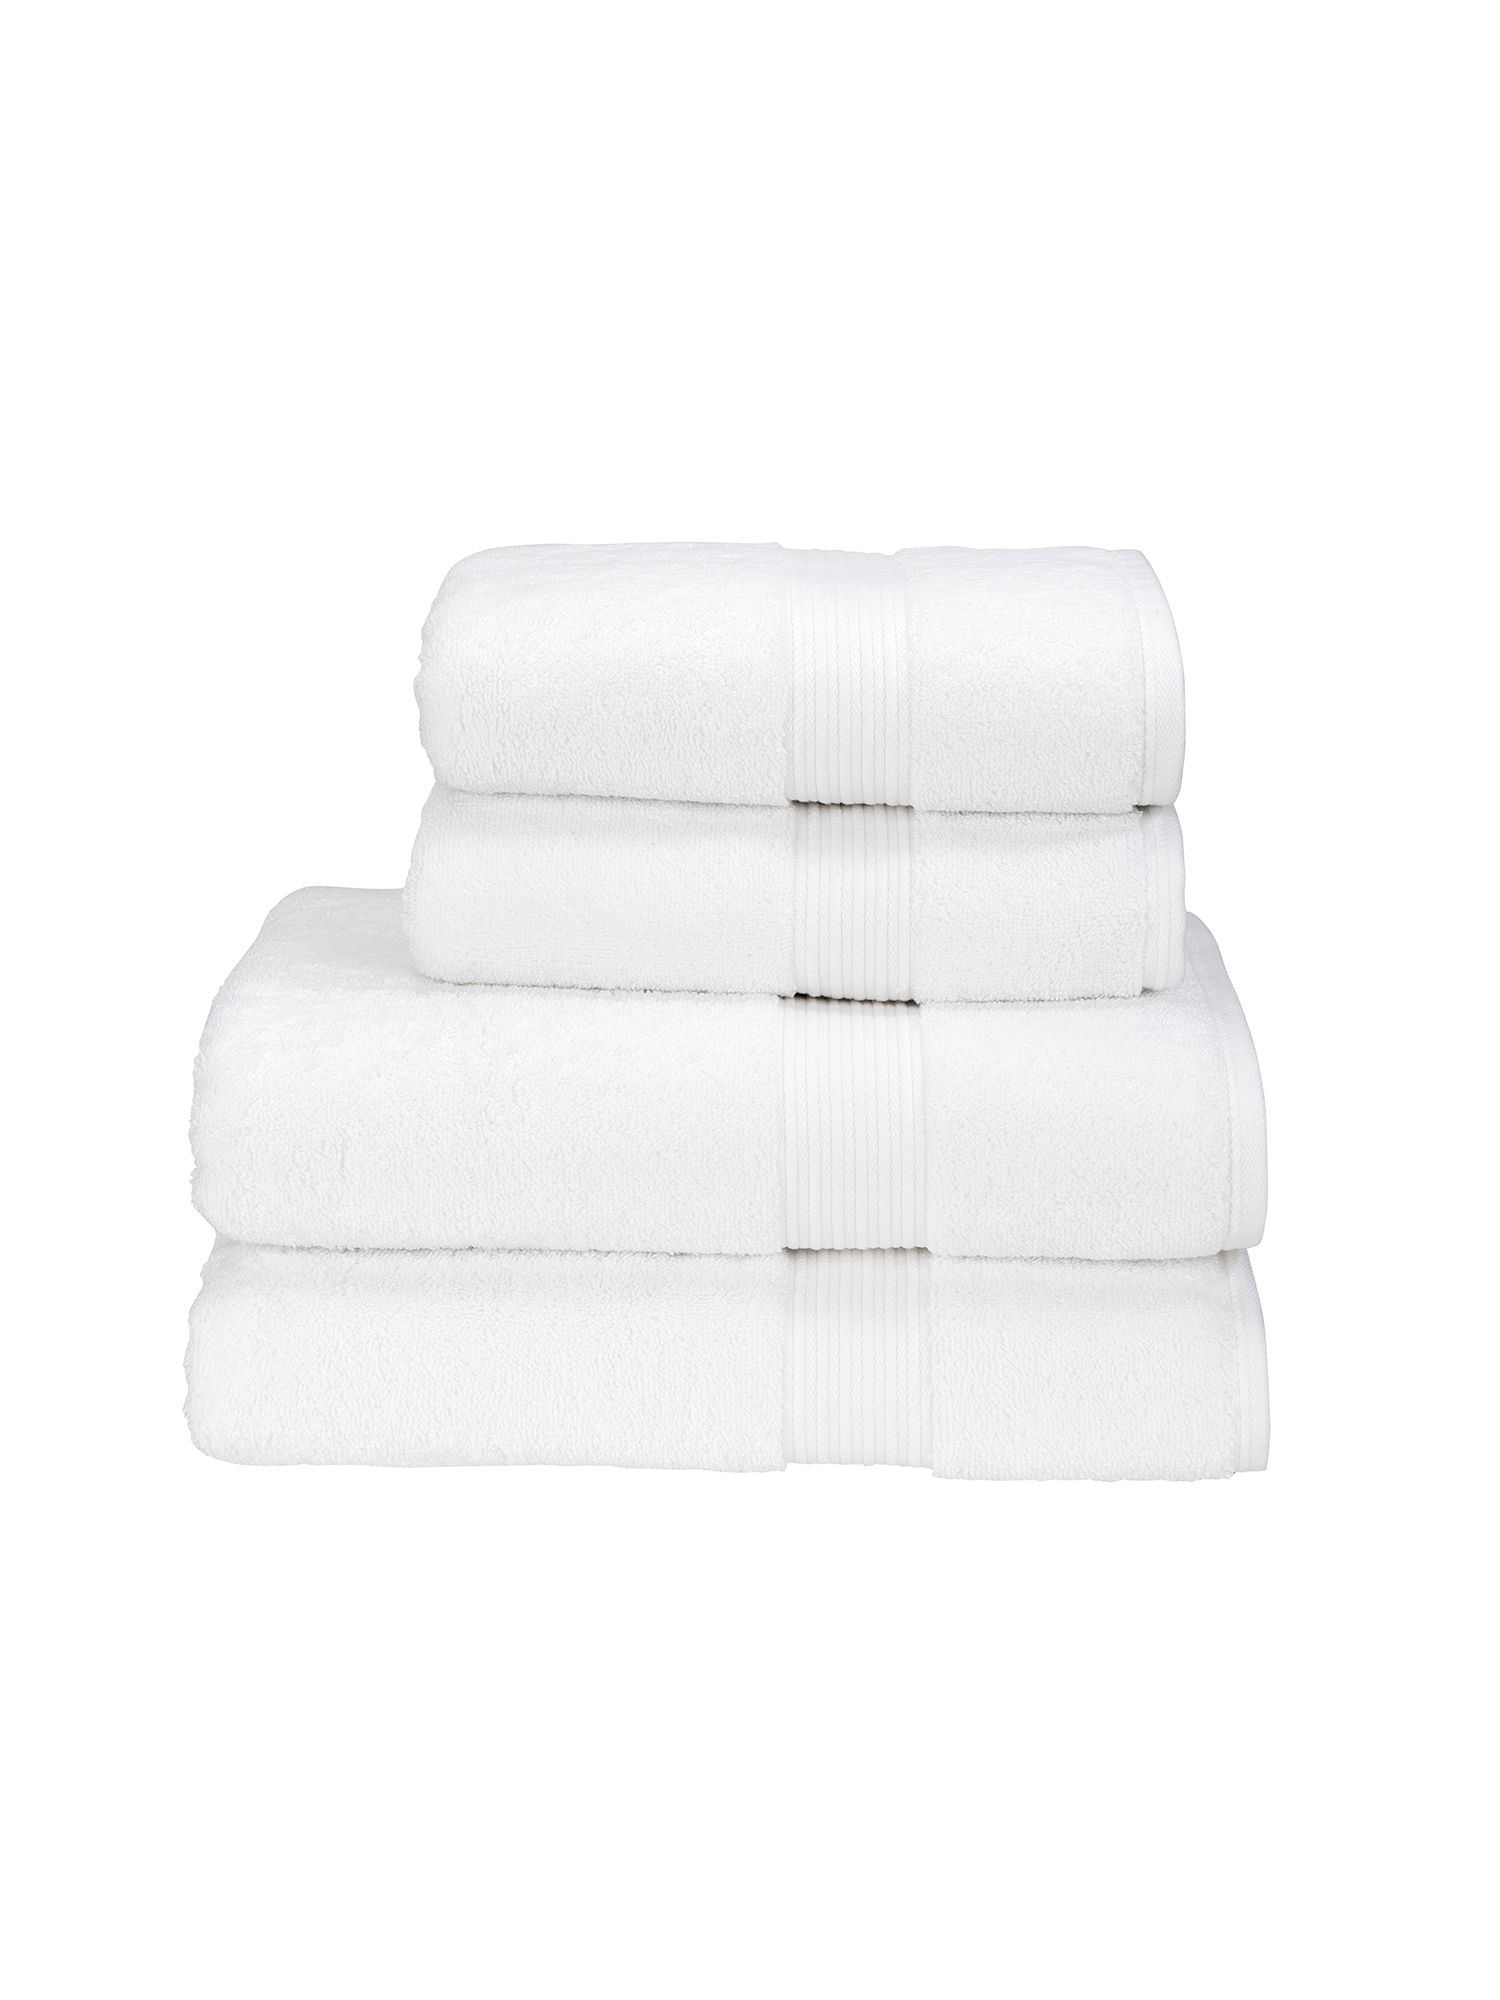 Supreme hygro towel white